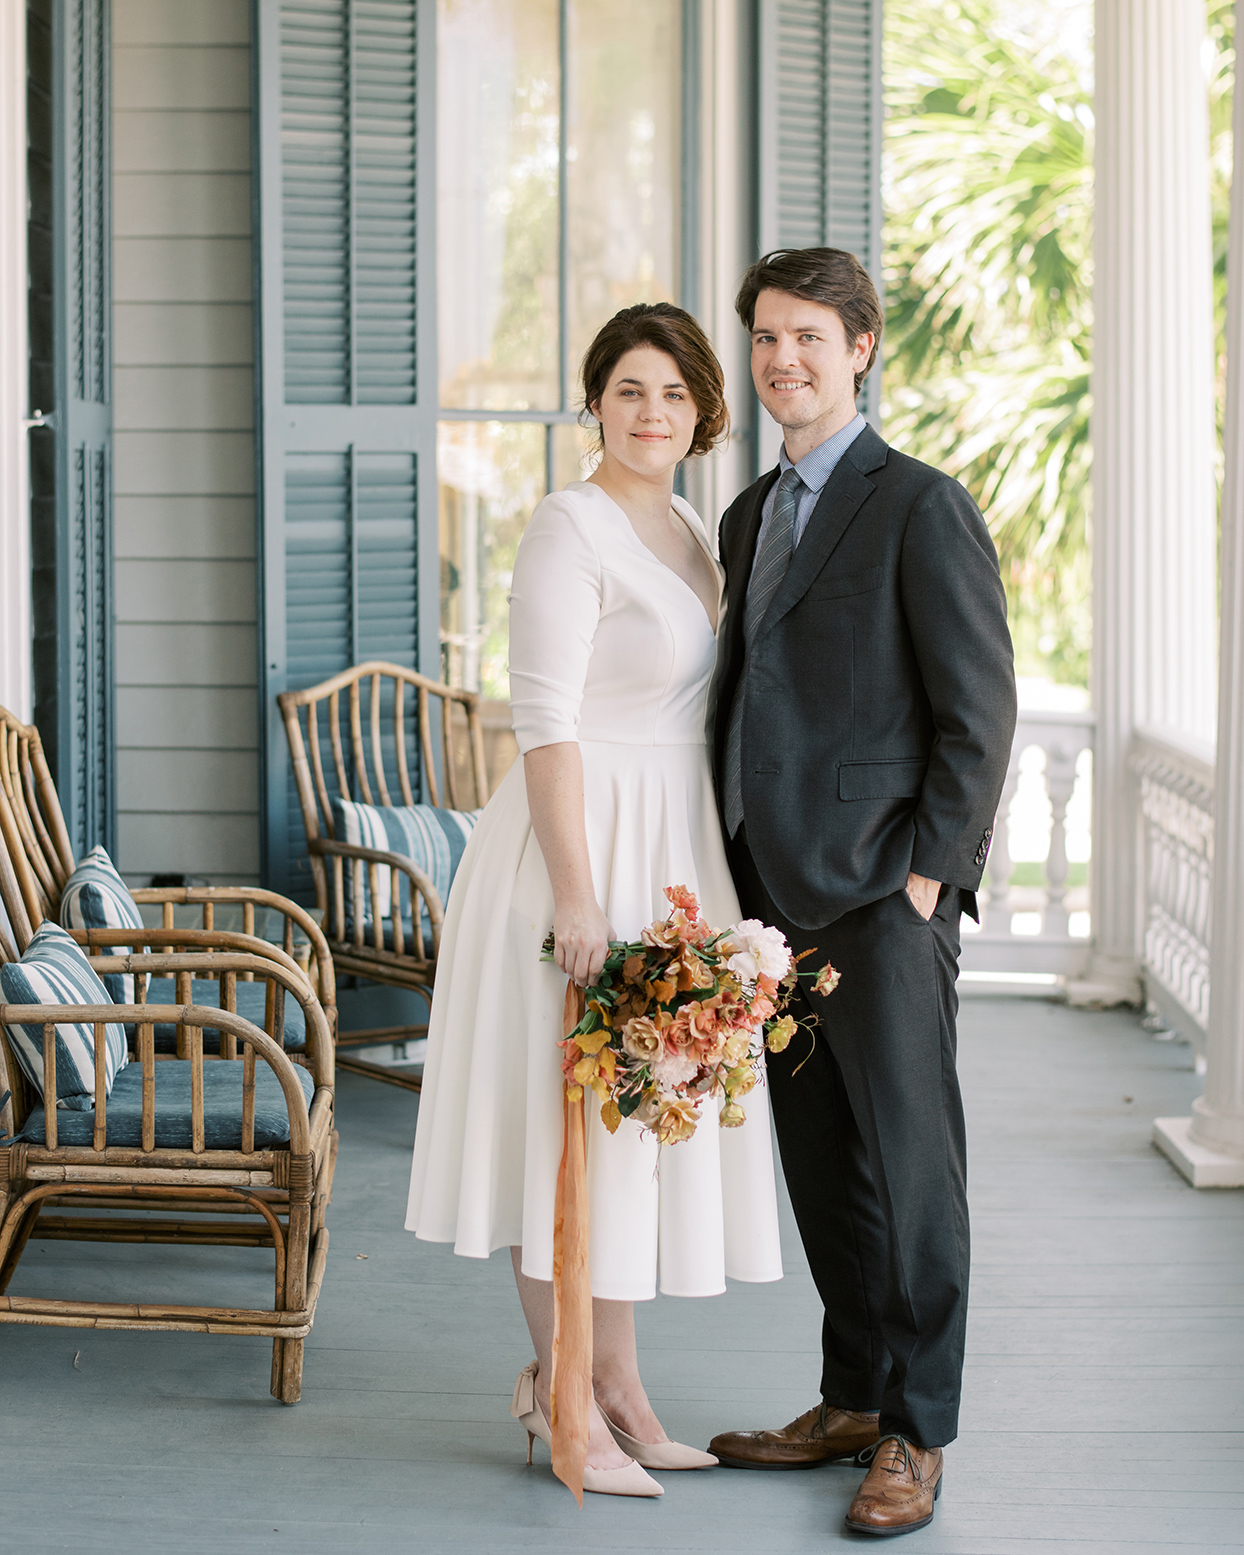 This Intimate Houston Wedding Was a Labor of Pure Love